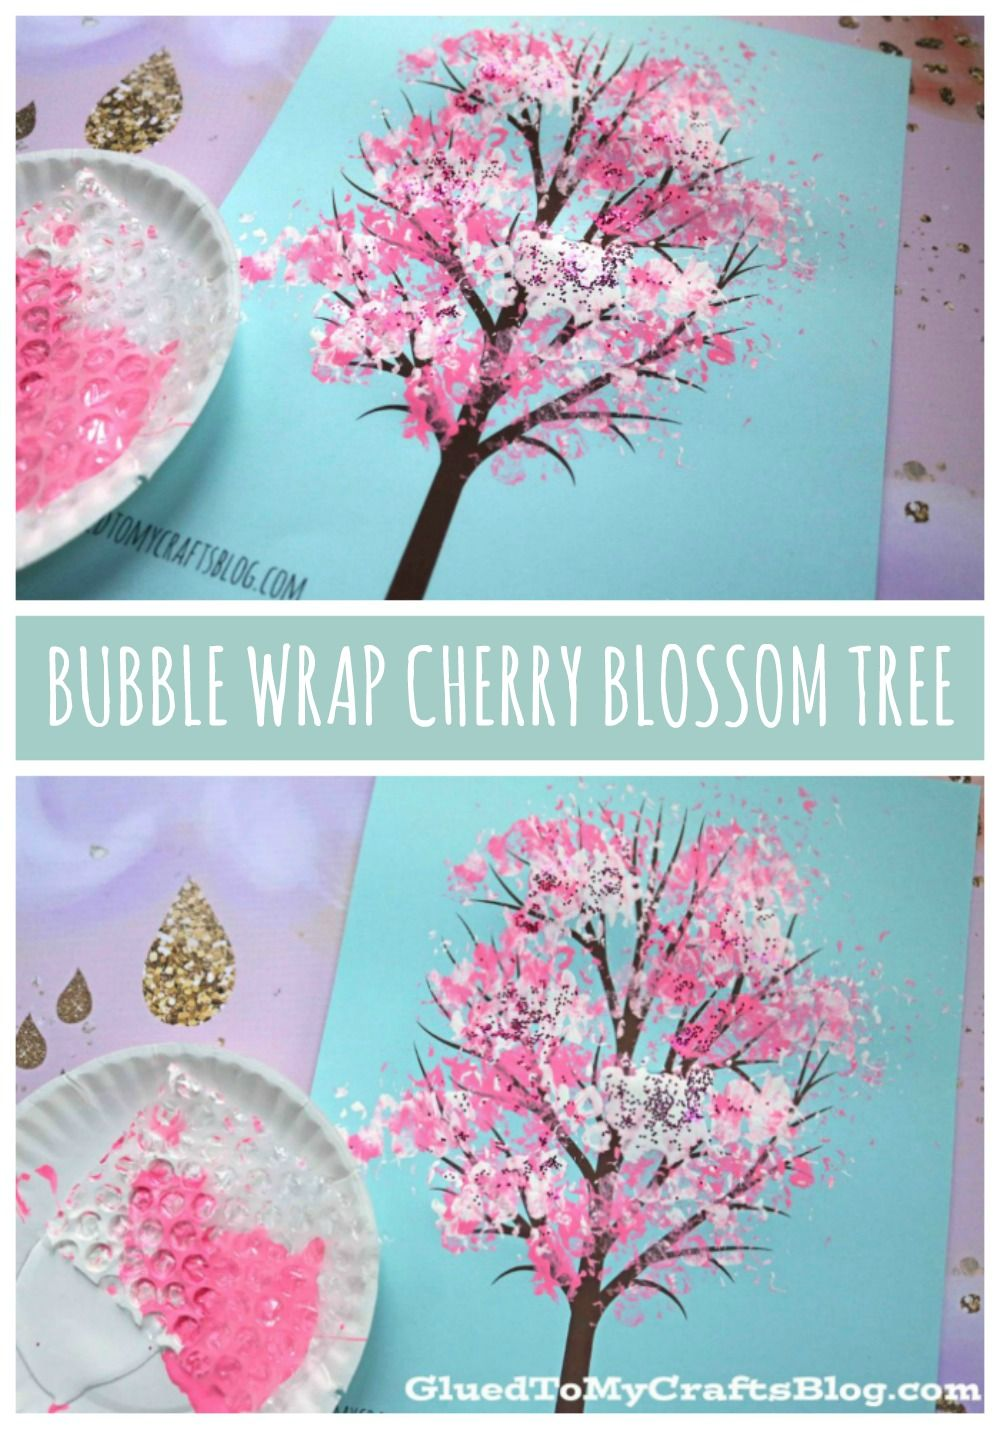 Bubble Wrap Print Cherry Blossom Tree Kid Craft Idea For Spring Spring Crafts For Kids Spring Tree Art Spring Arts And Crafts